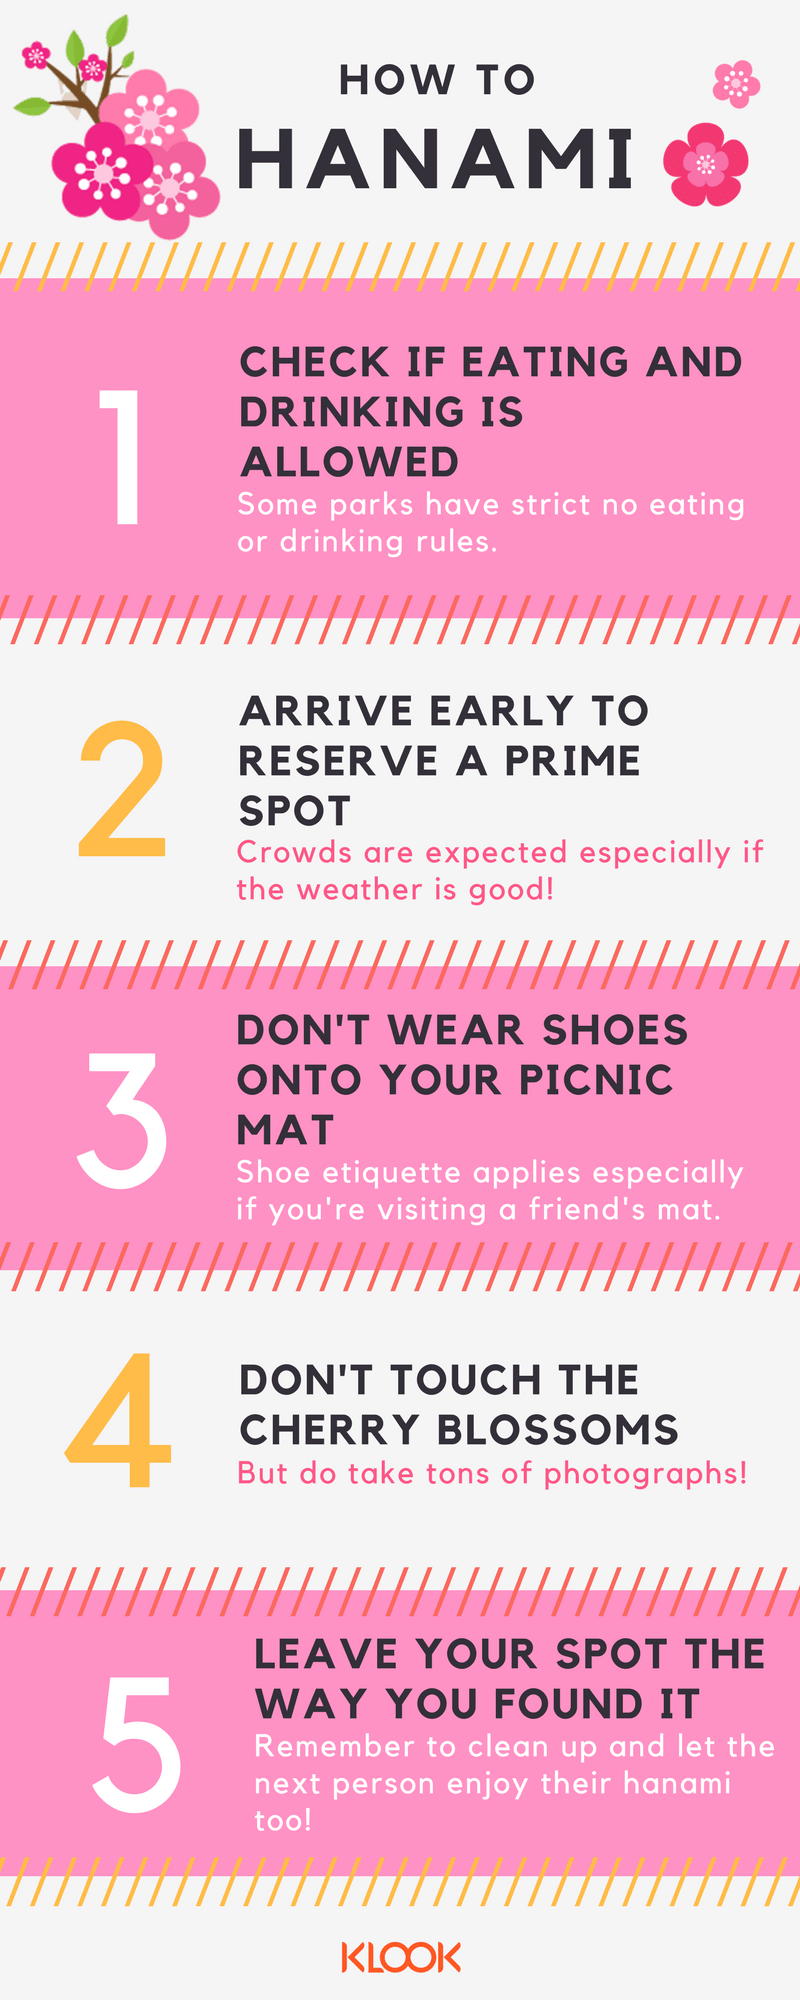 5 ways to hanami infographic